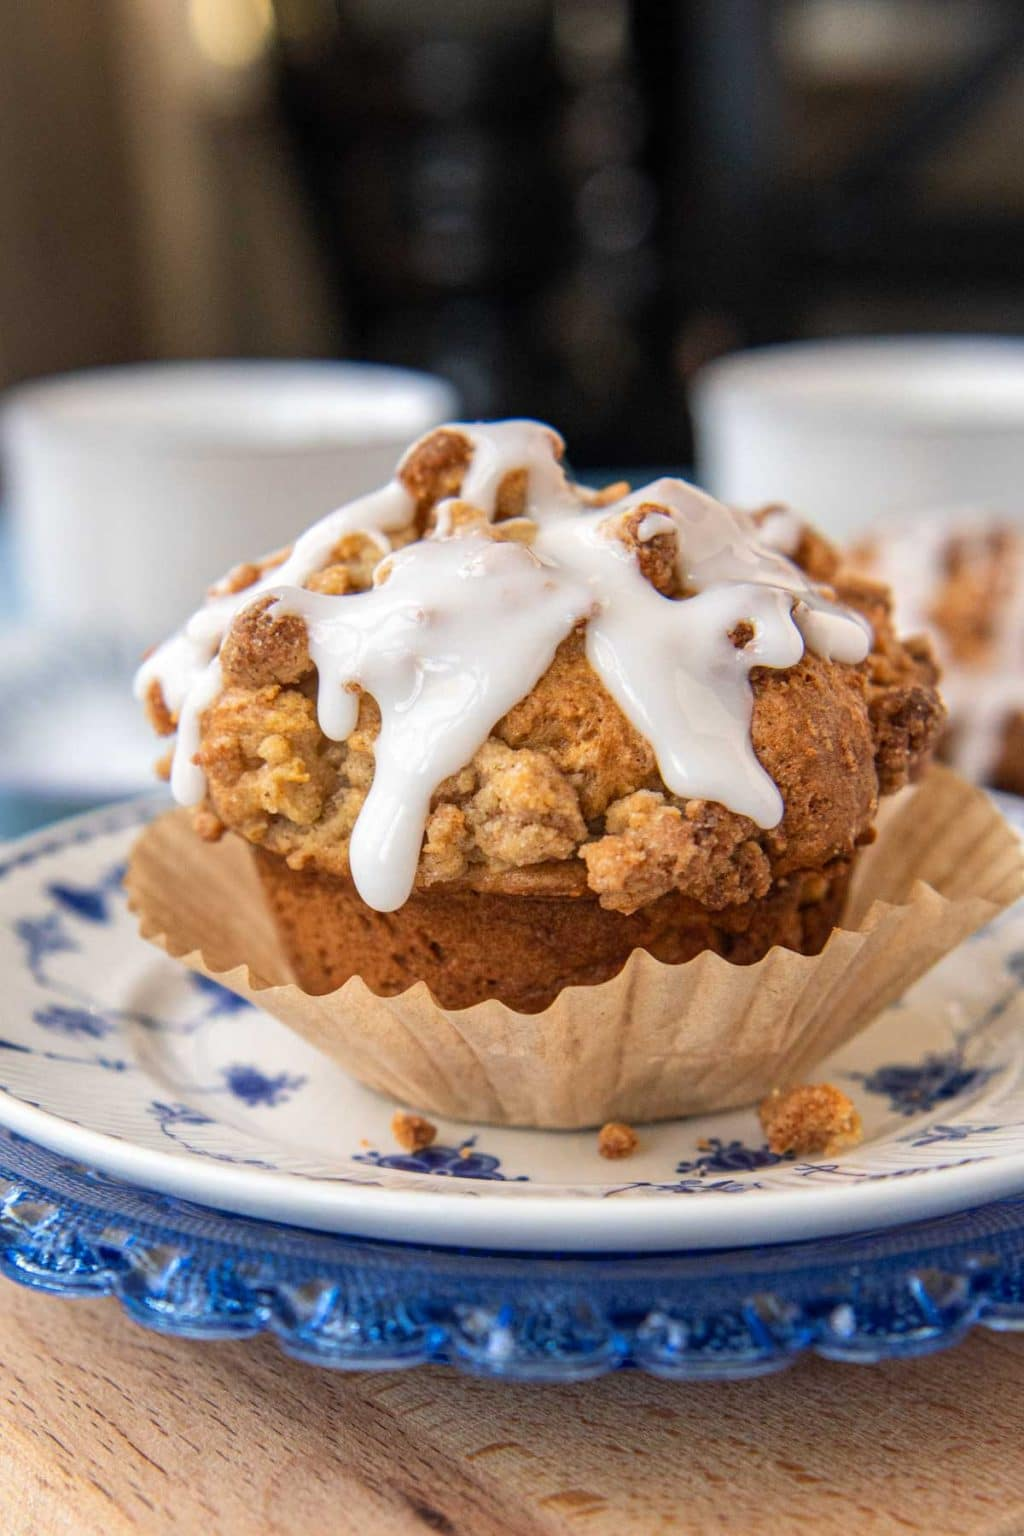 a gluten-free apple muffin partially unwrapped from a paper liner